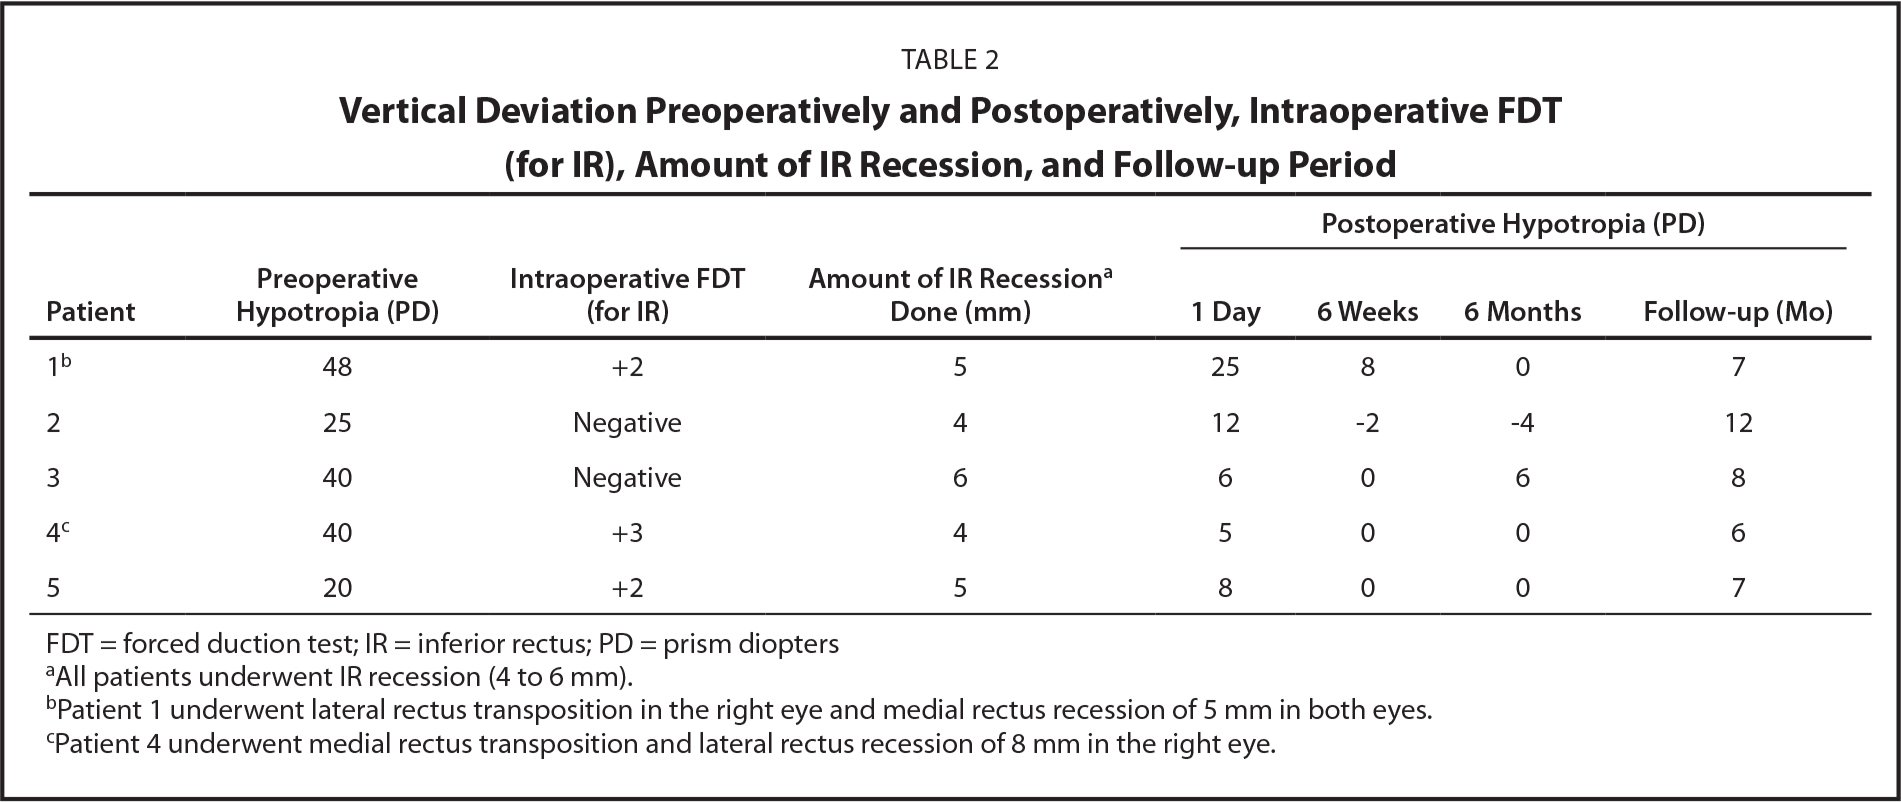 Vertical Deviation Preoperatively and Postoperatively, Intraoperative FDT (for IR), Amount of IR Recession, and Follow-up Period